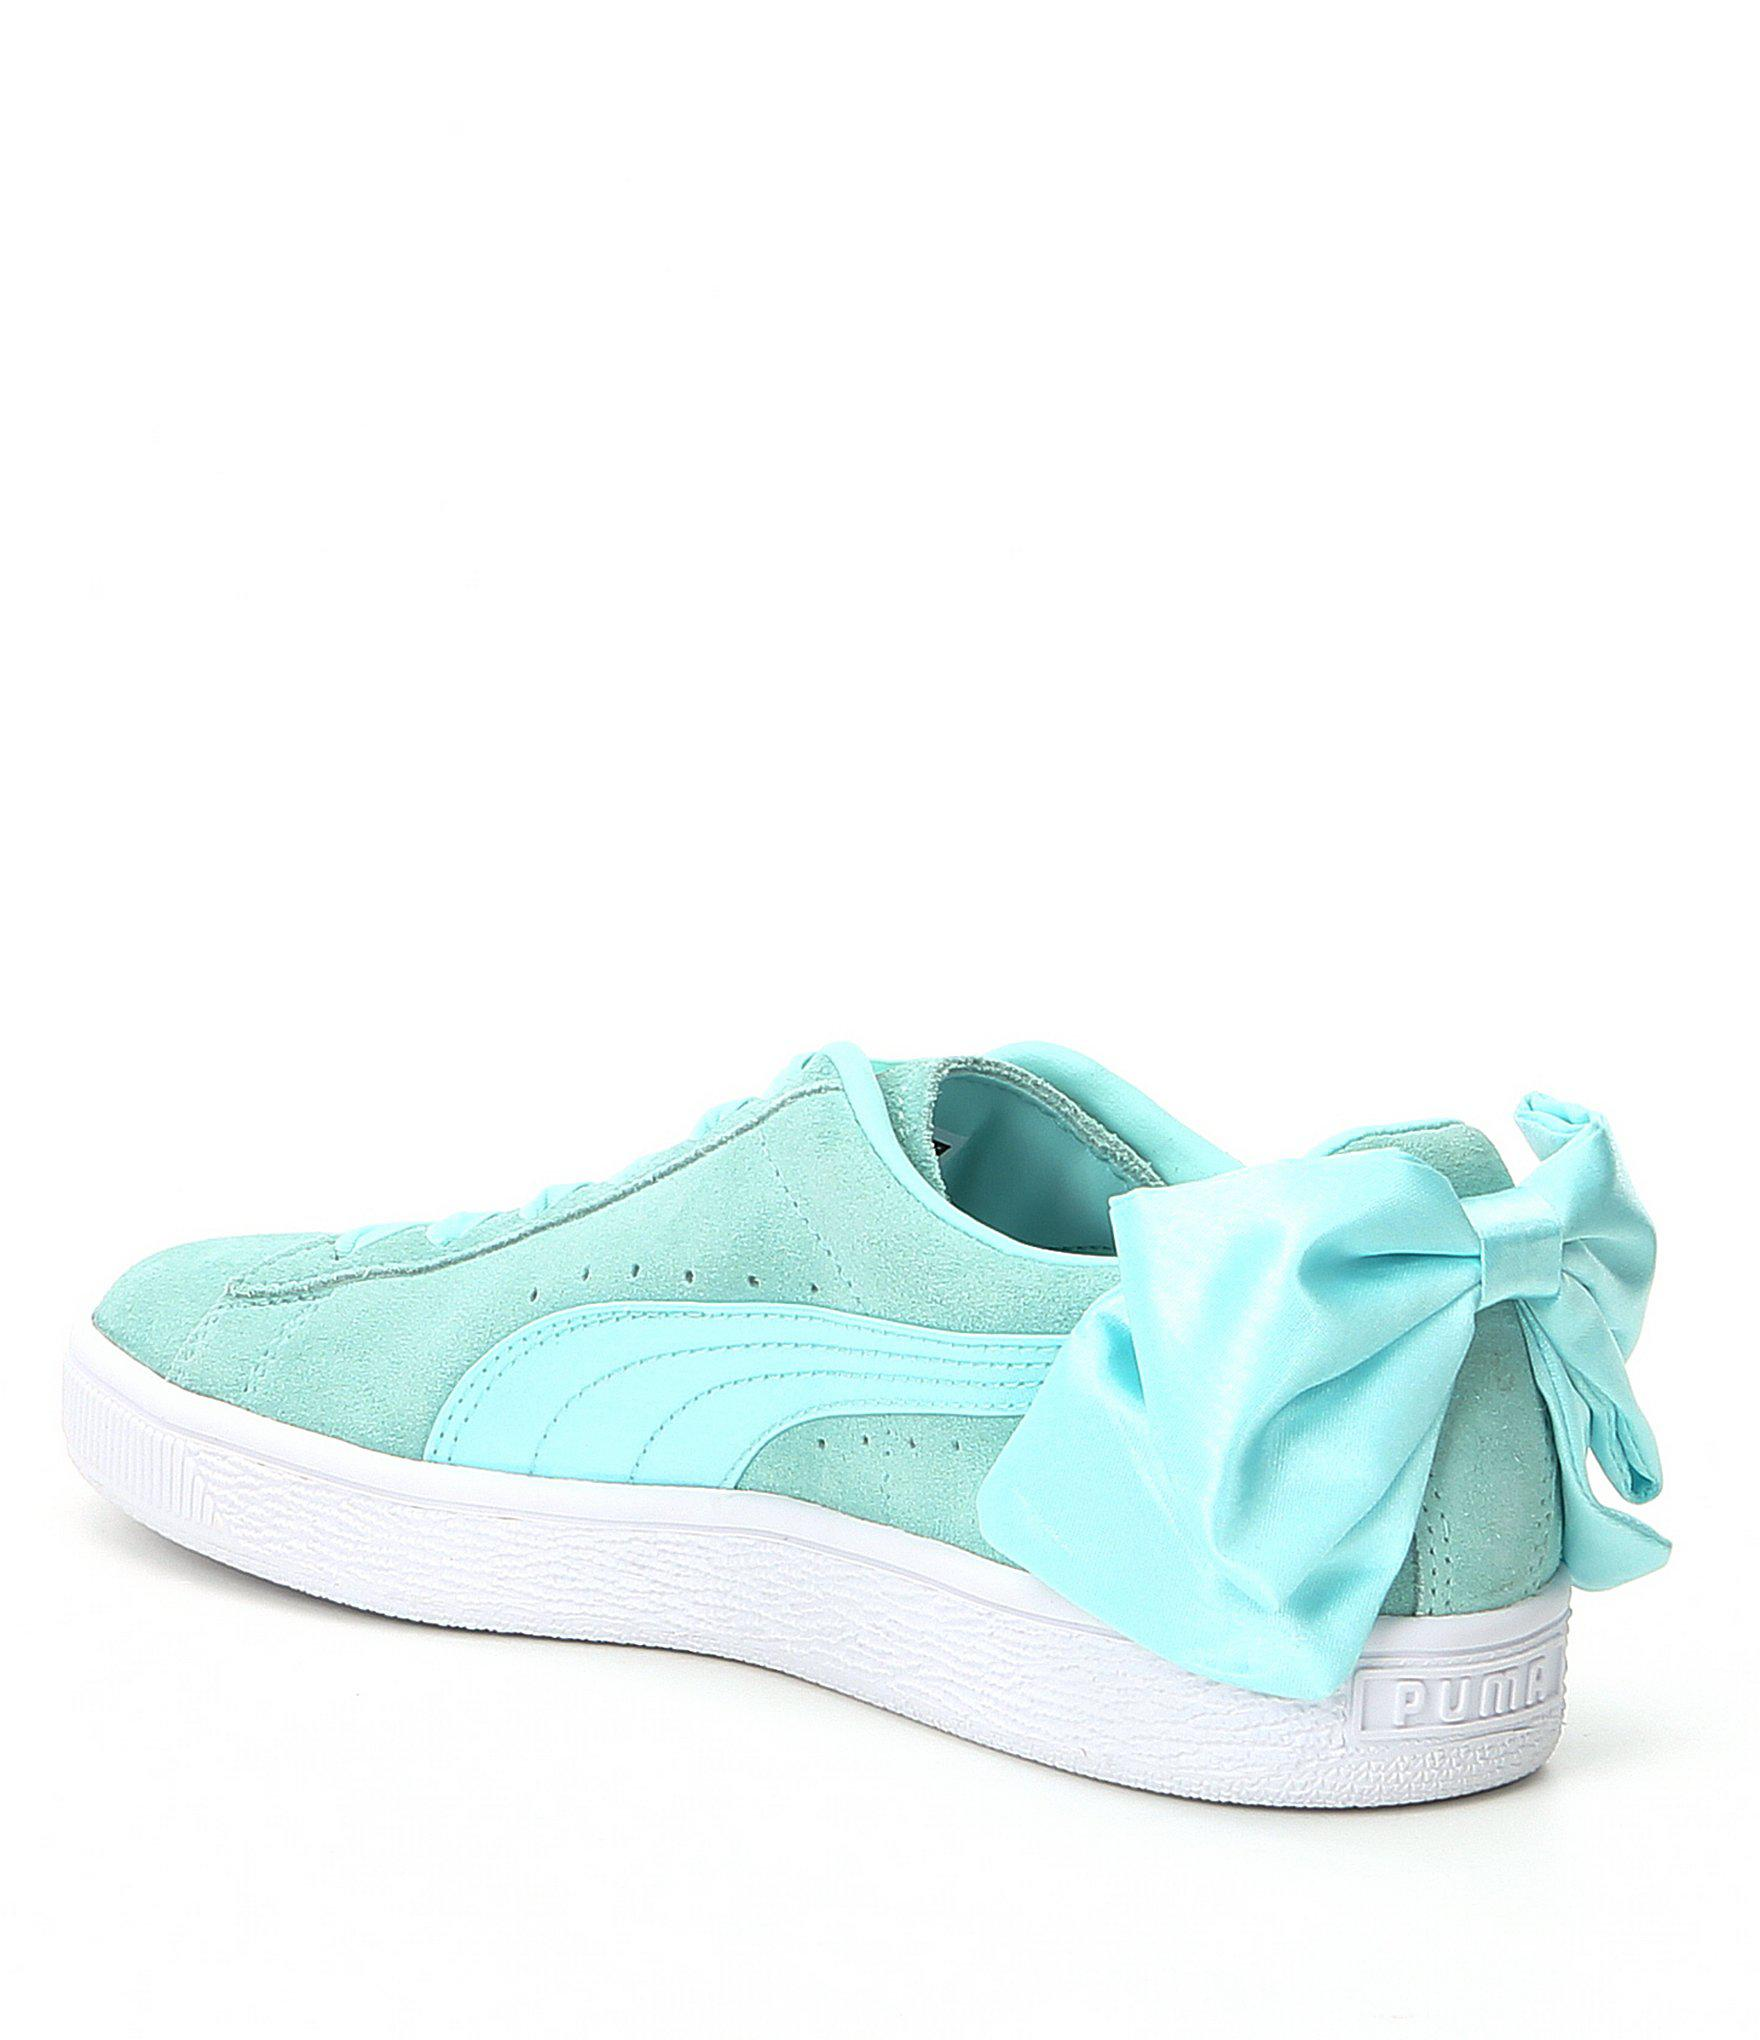 ... Lyst - Puma Suede Satin Bow Detail Sneakers in Black autumn shoes 8aad1  dd5e7 ... e2454d0c4